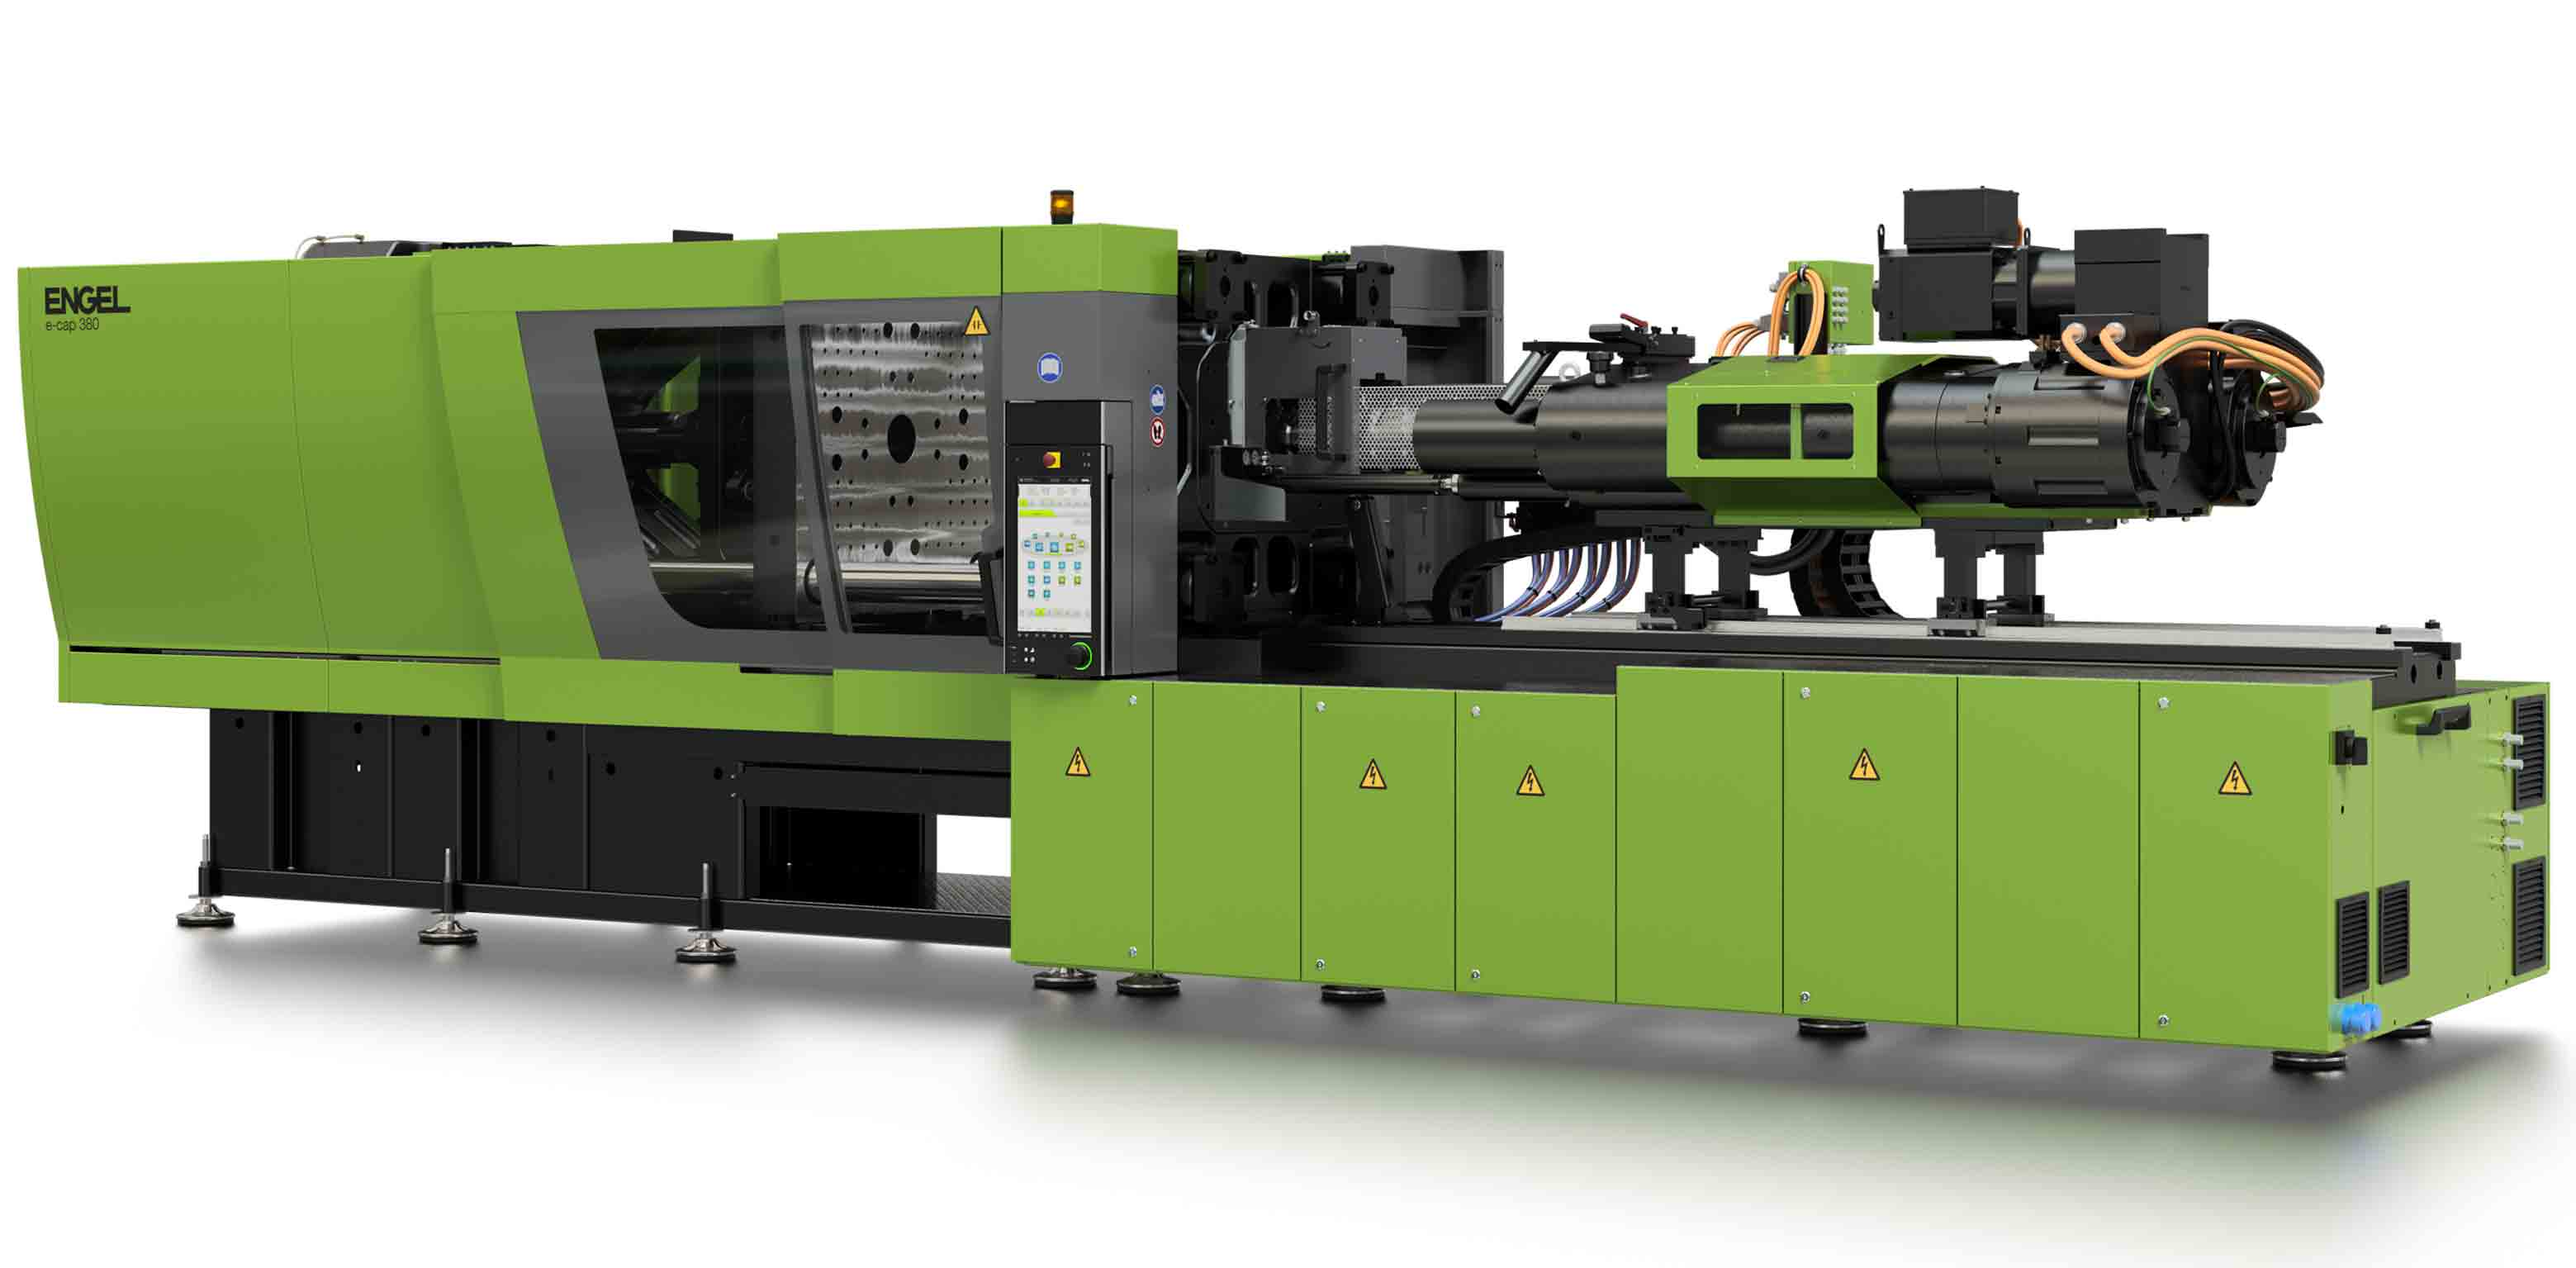 All Electric Injection Molding Machine by ENGEL